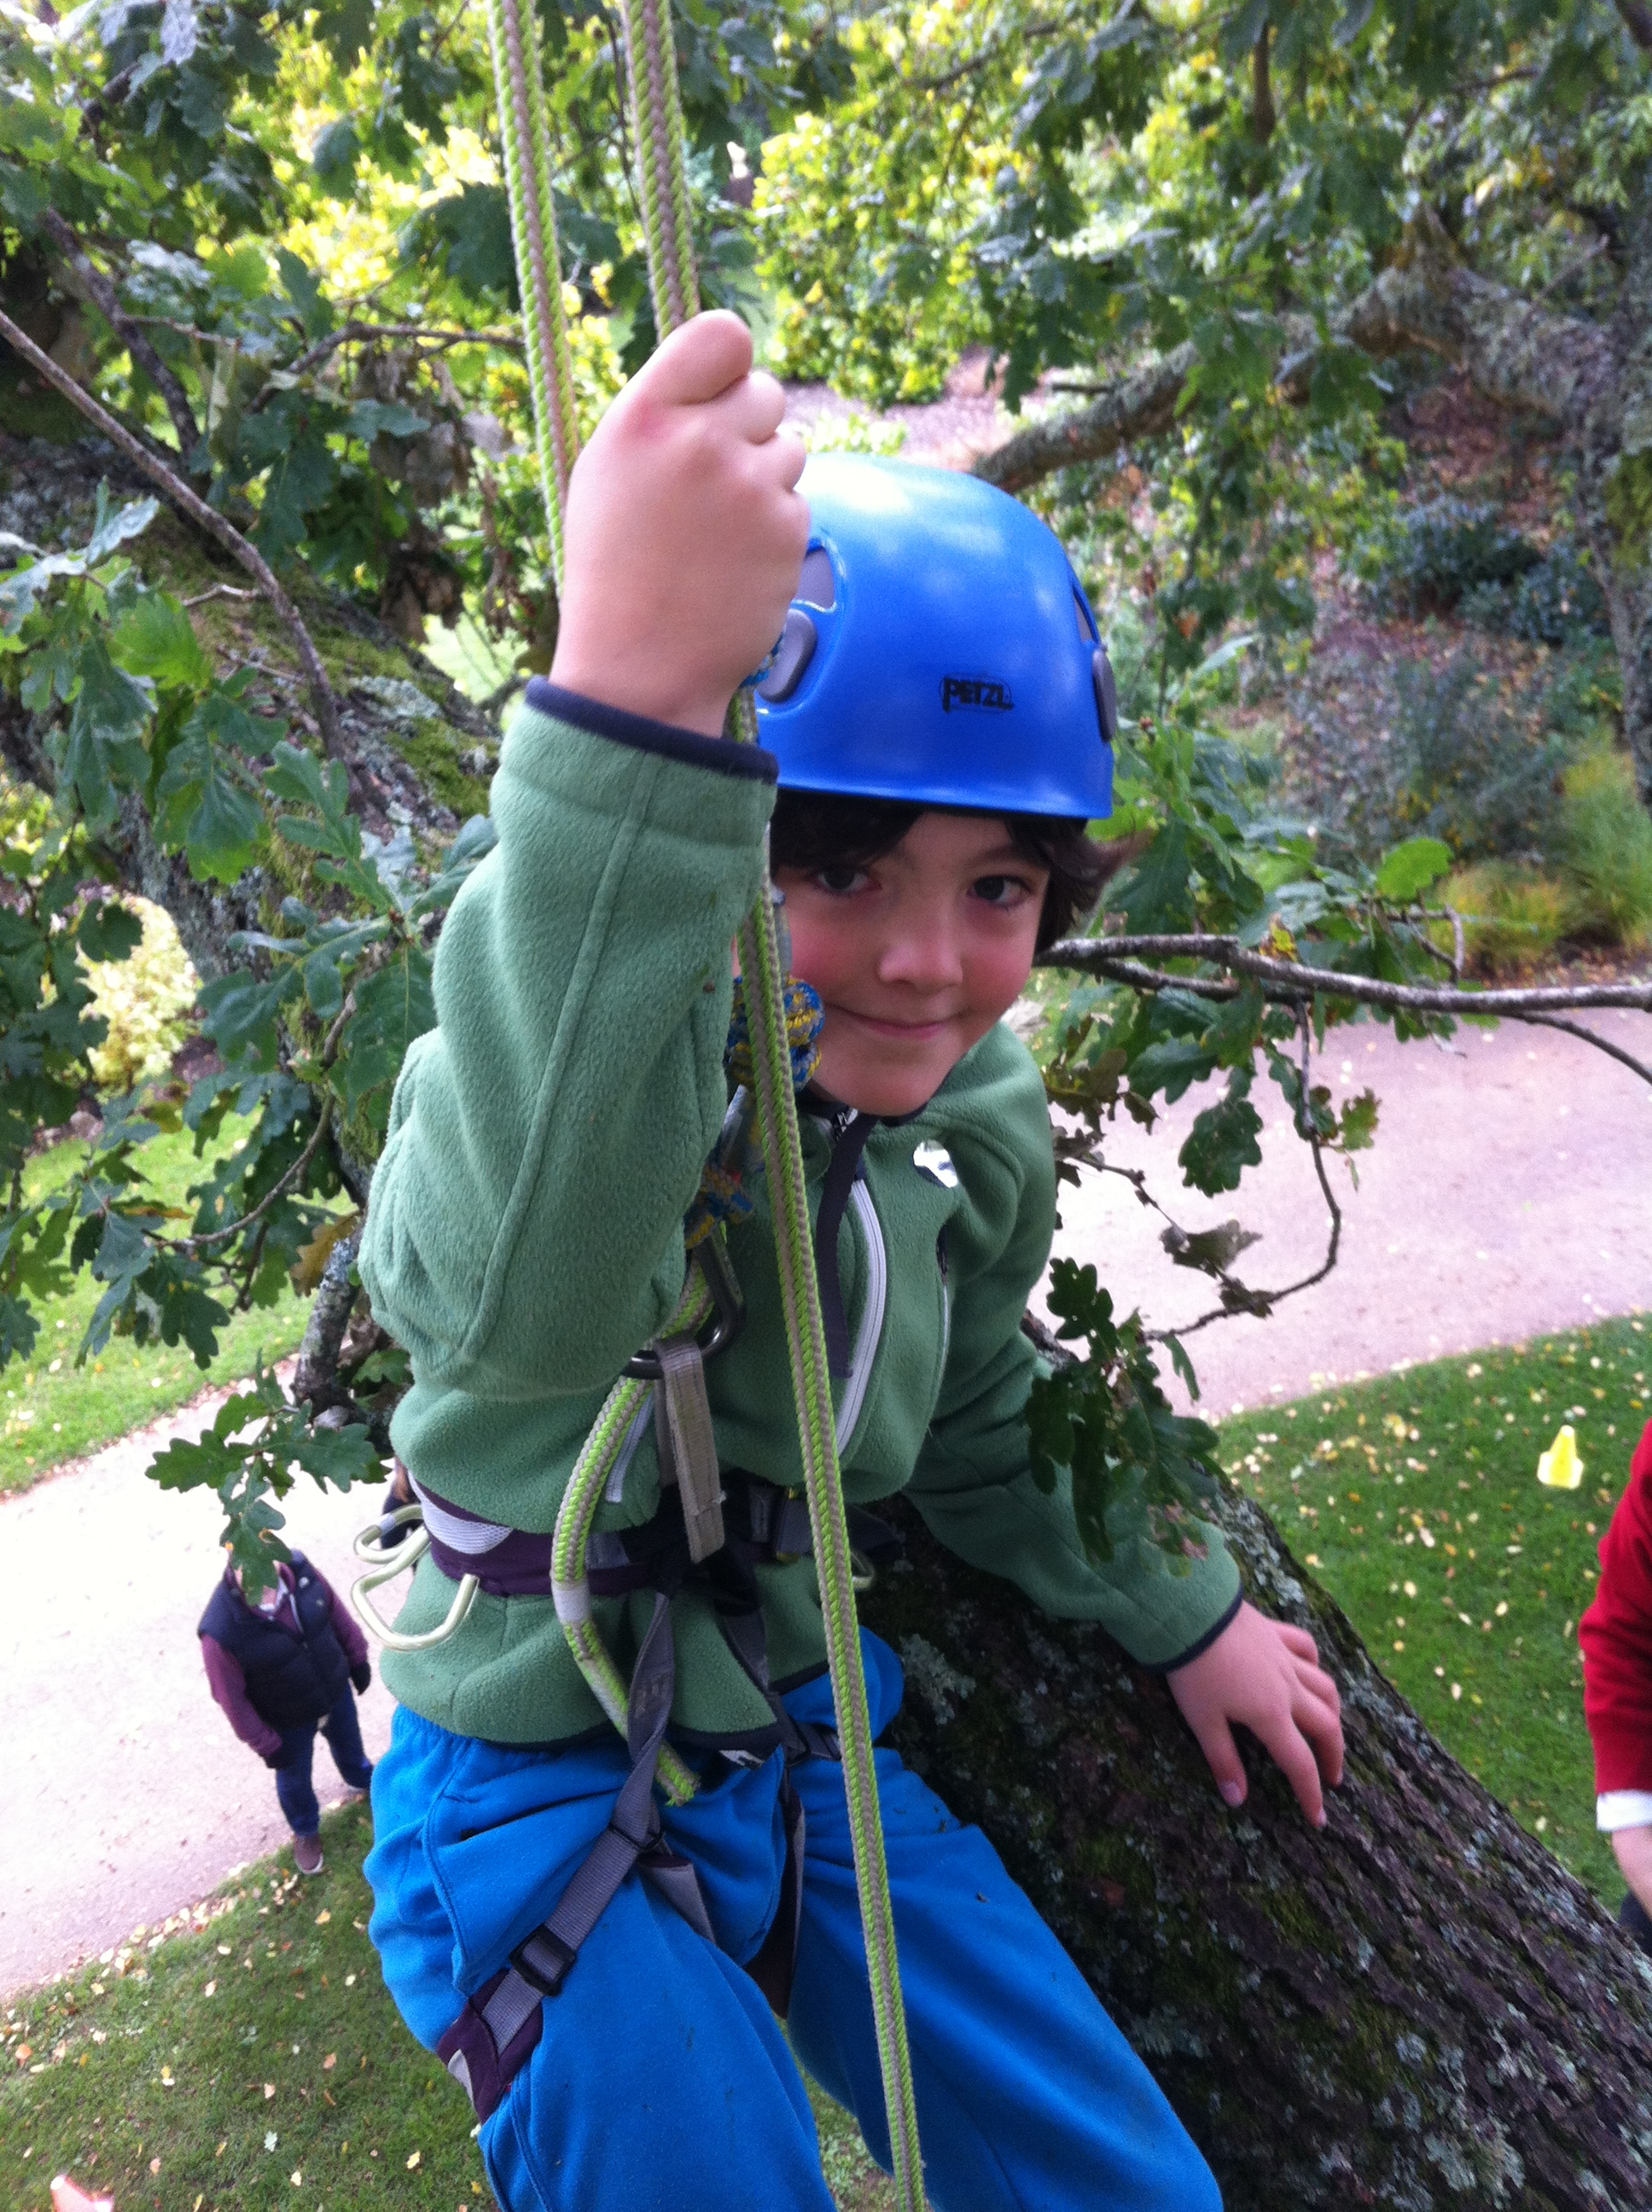 The Great Big Tree Climb at Morden Hall Park! Wed 24 July